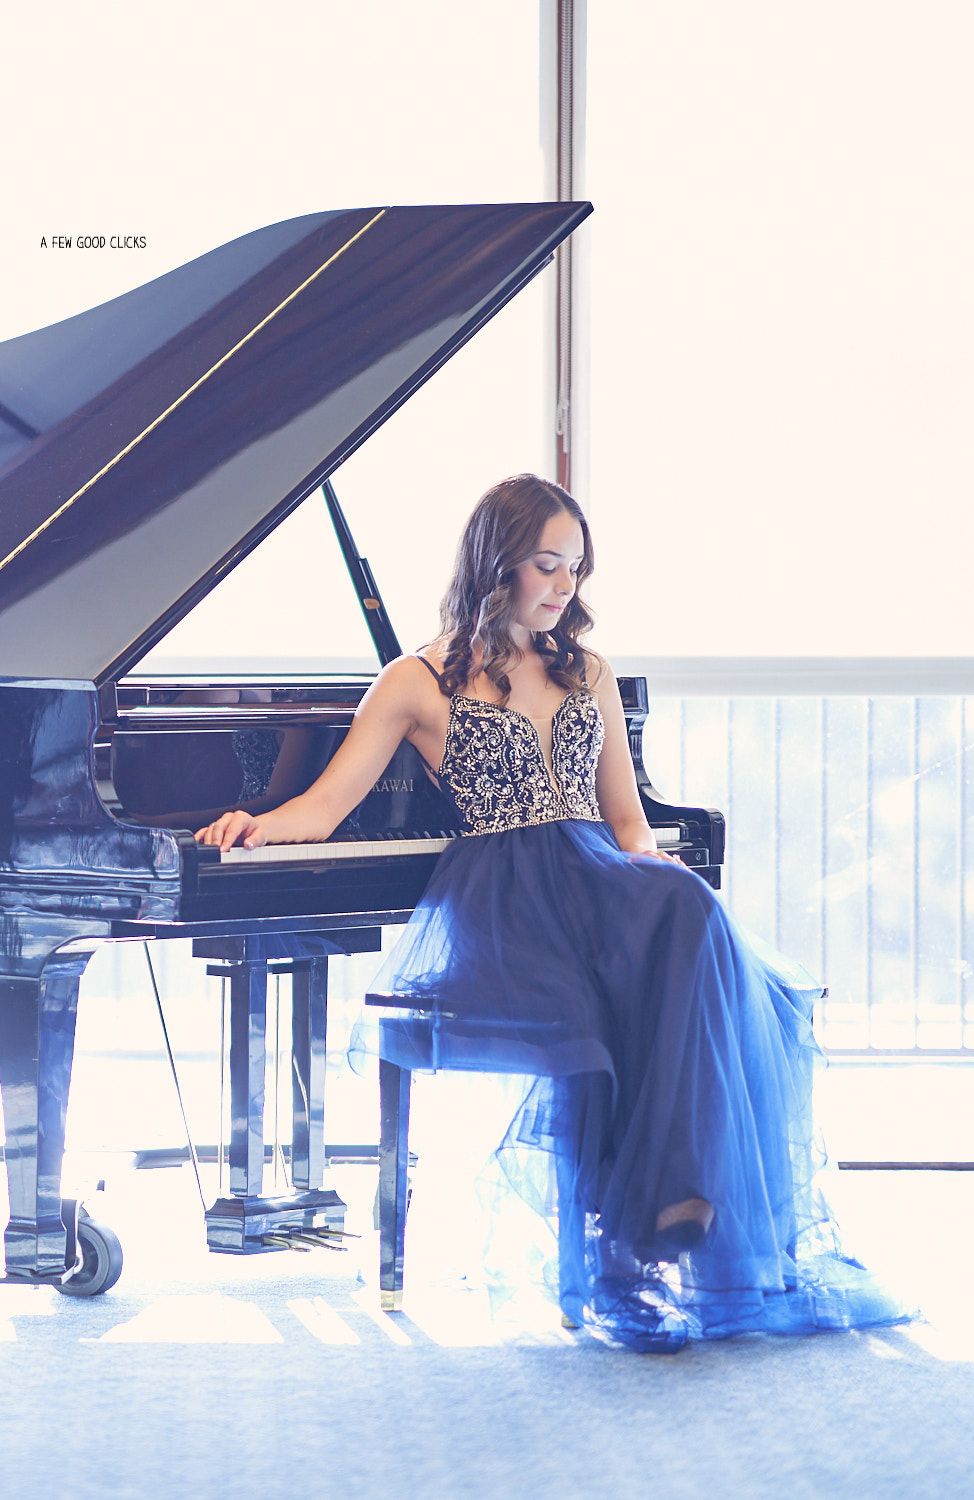 destination-engagement-photo-shoot-with-piano-in-san-jose-ca